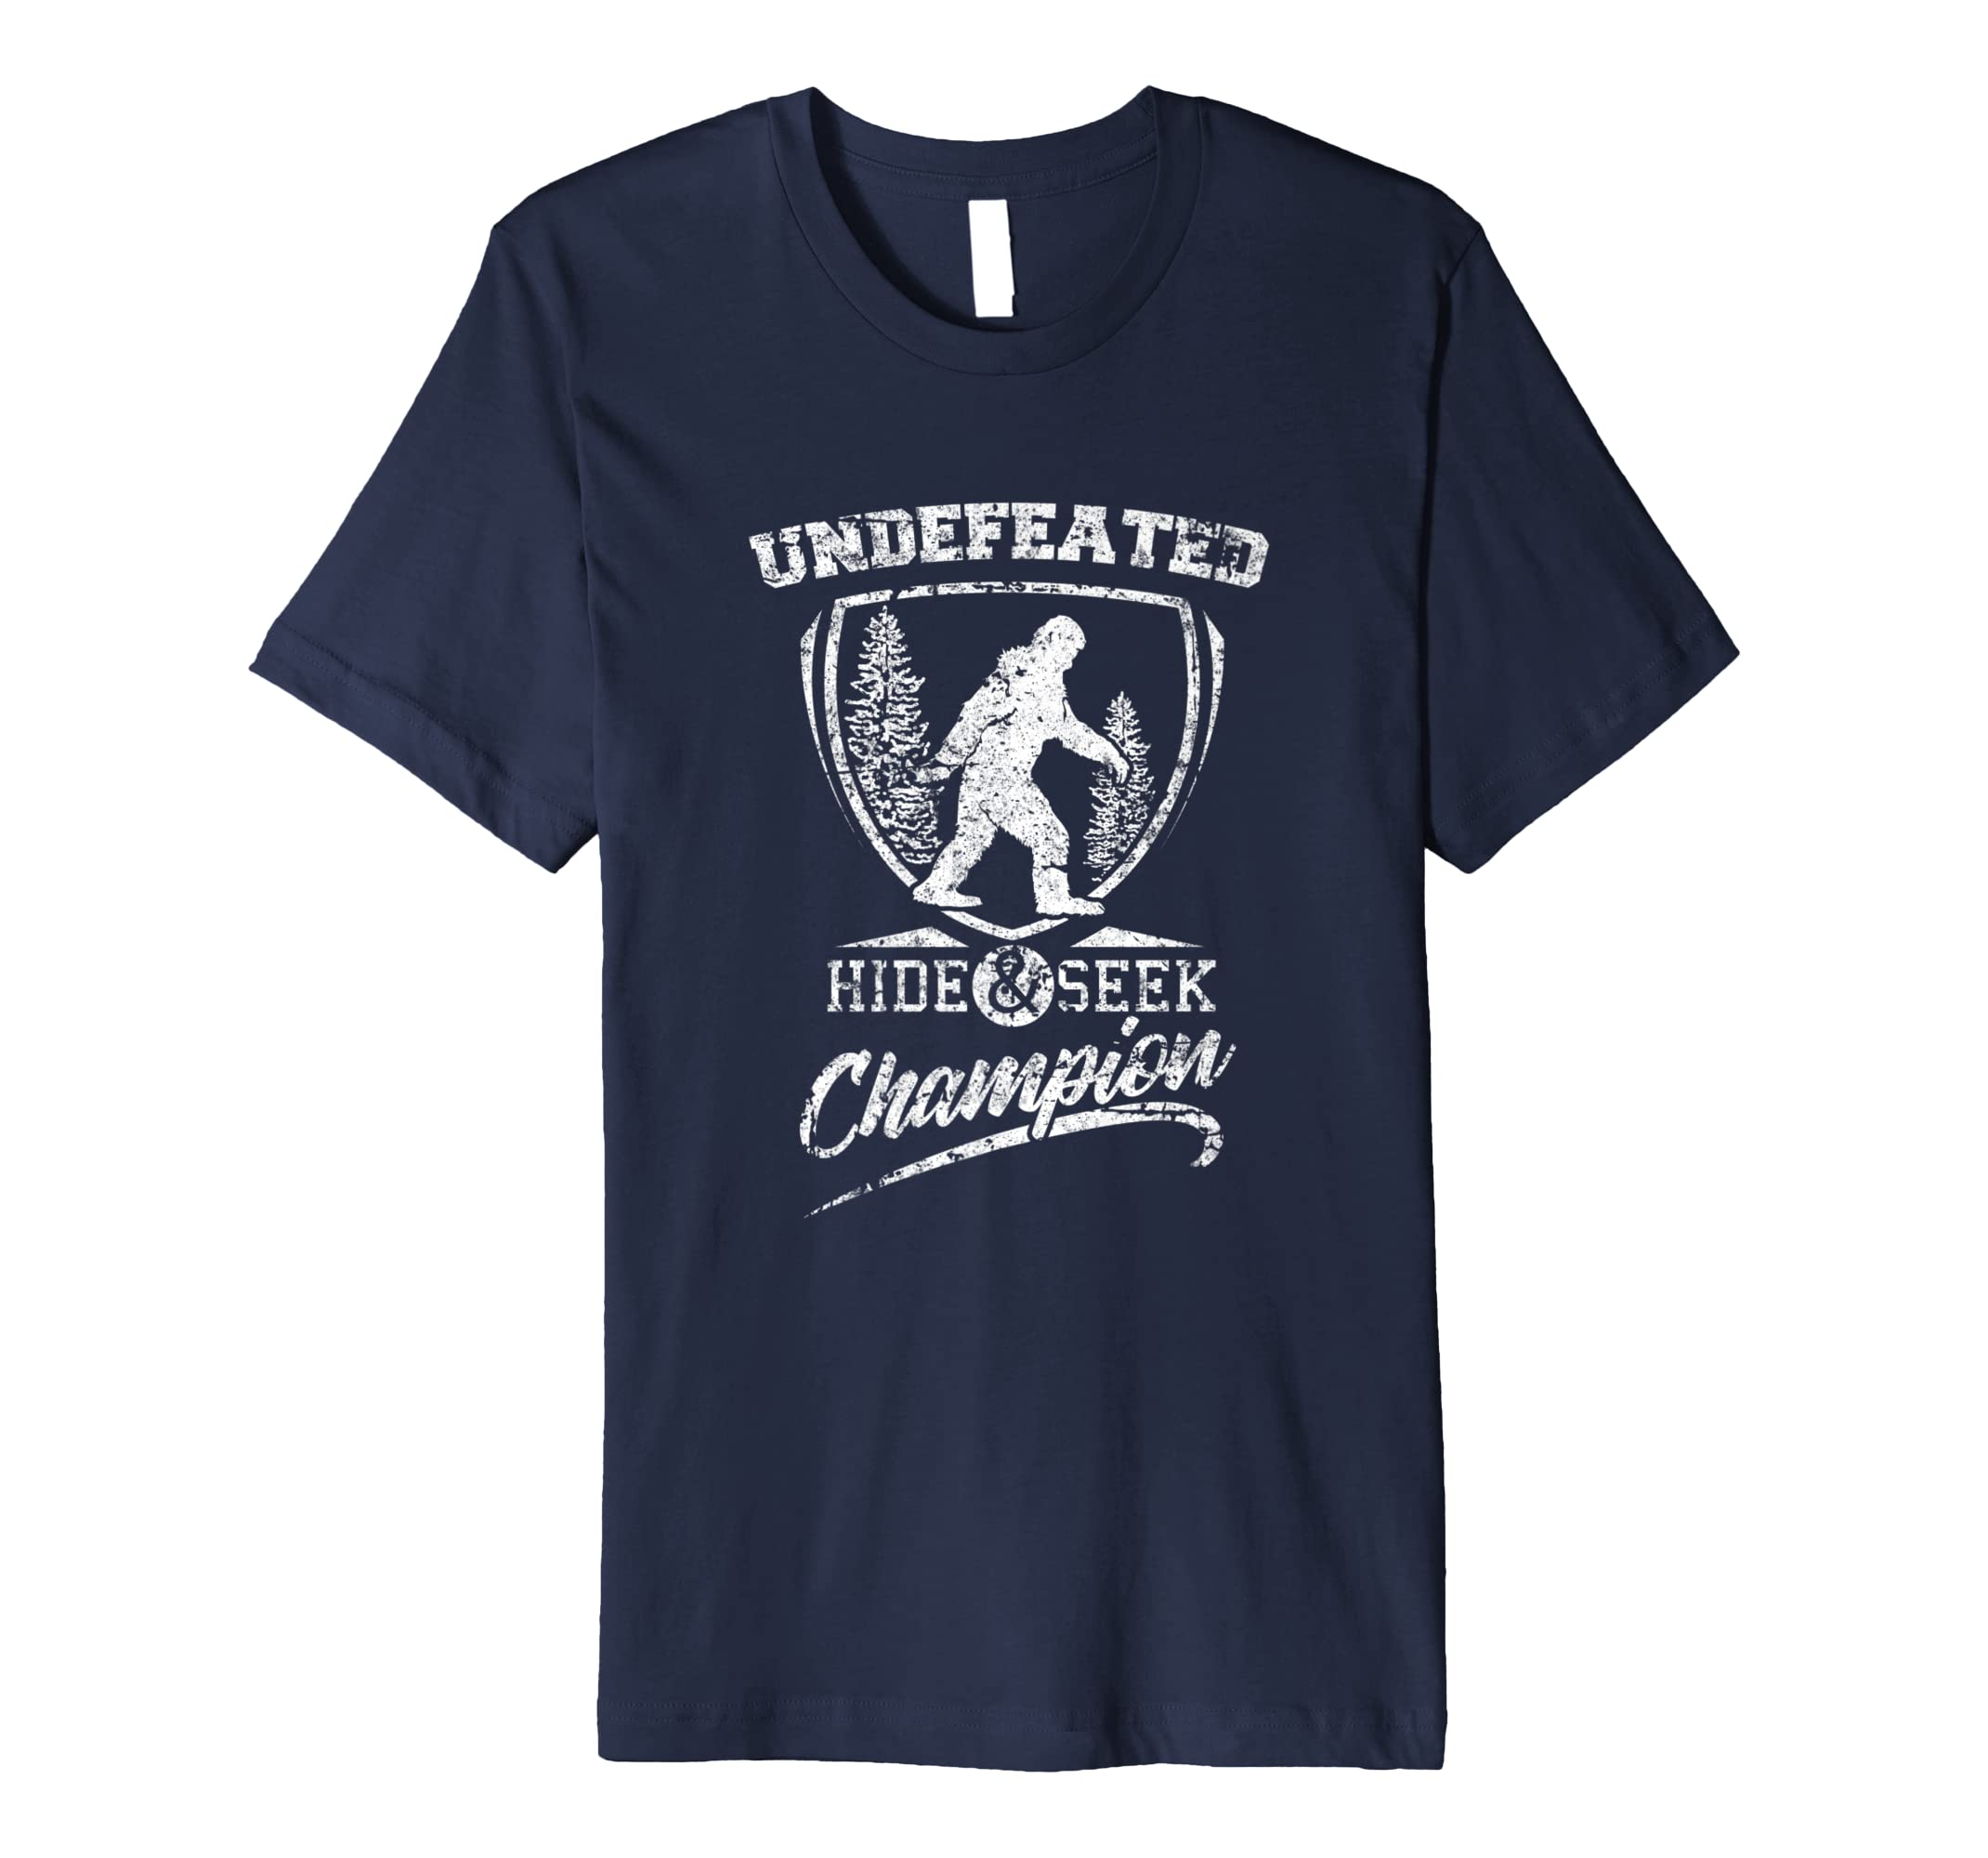 4e97689f Amazon.com: Undefeated Hide & Seek Champion Bigfoot Distressed Shirt:  Clothing